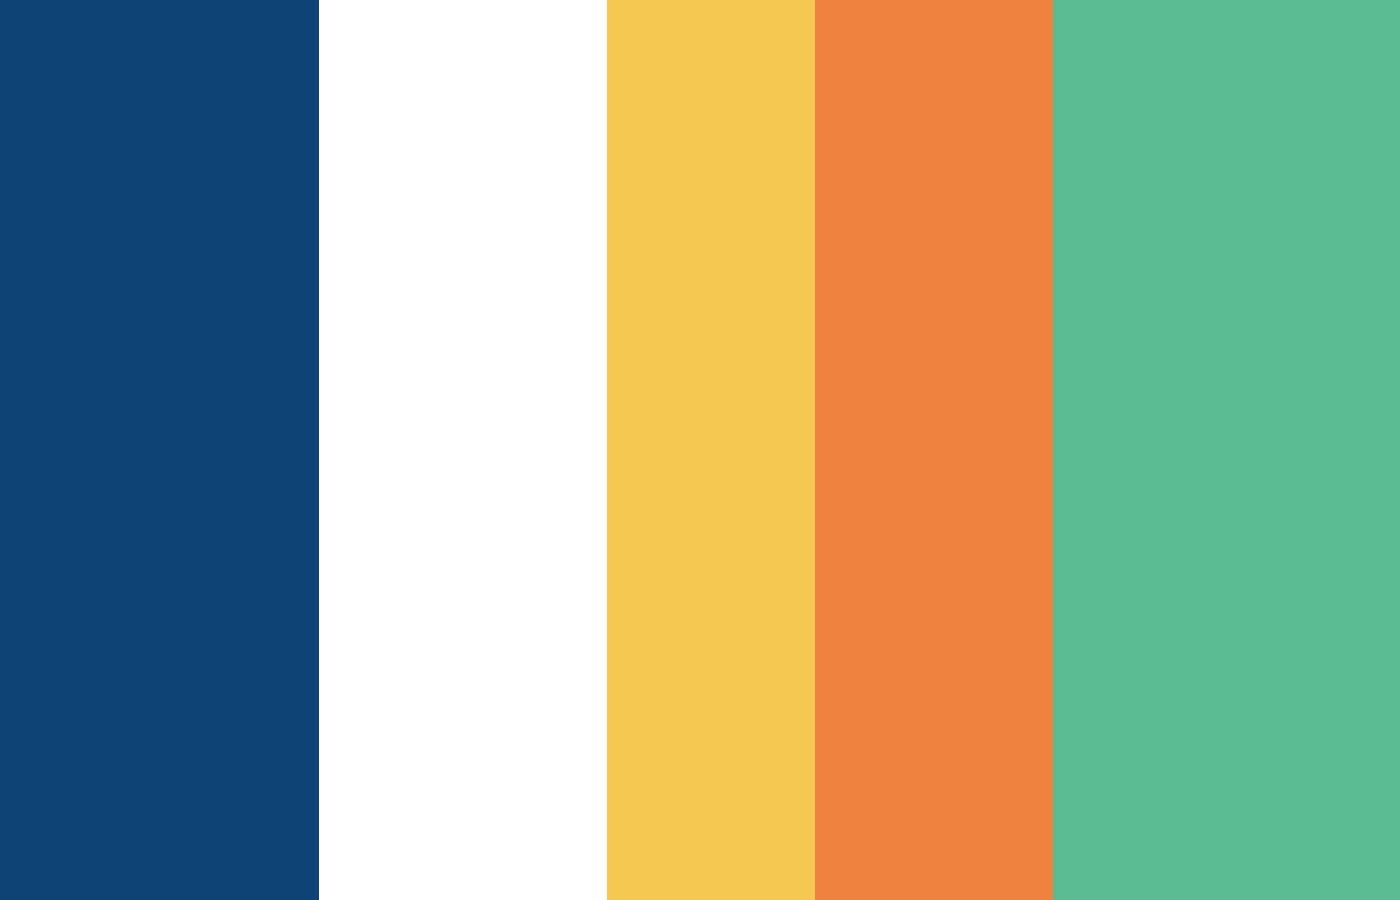 Image Result For Website Color Palette Combinations With Orange Yellow Blue Green